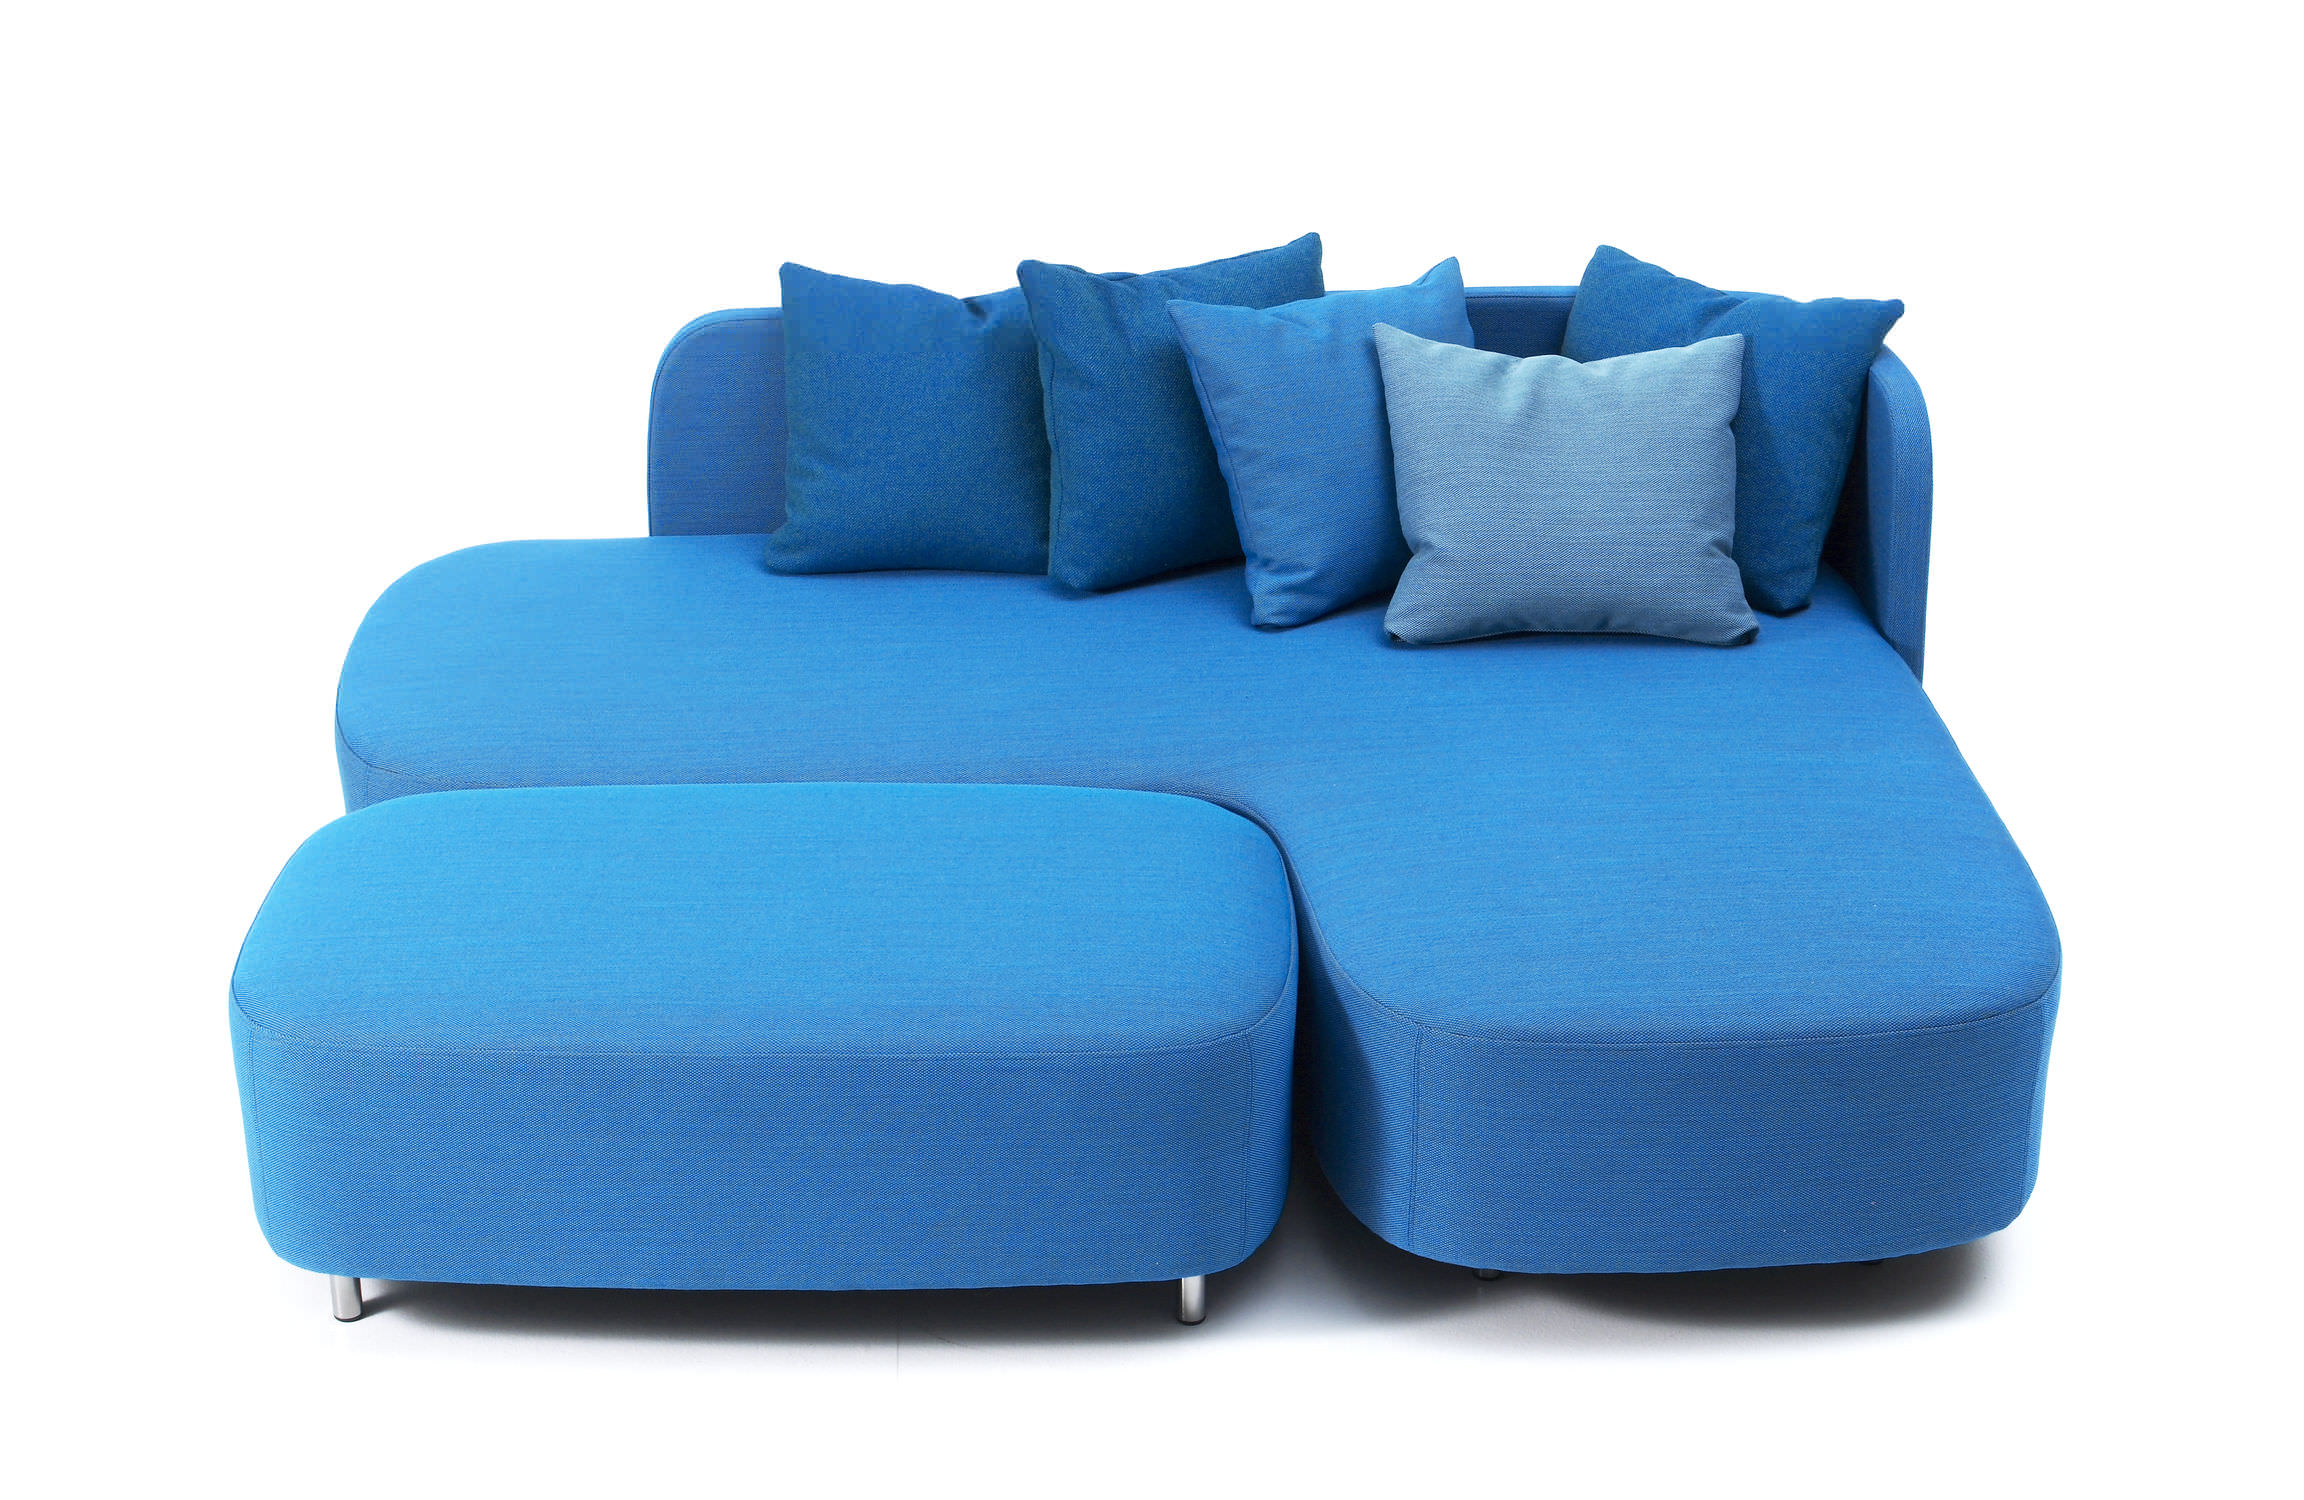 Small corner sofas - your dream pieces to save space with elegance and comfort